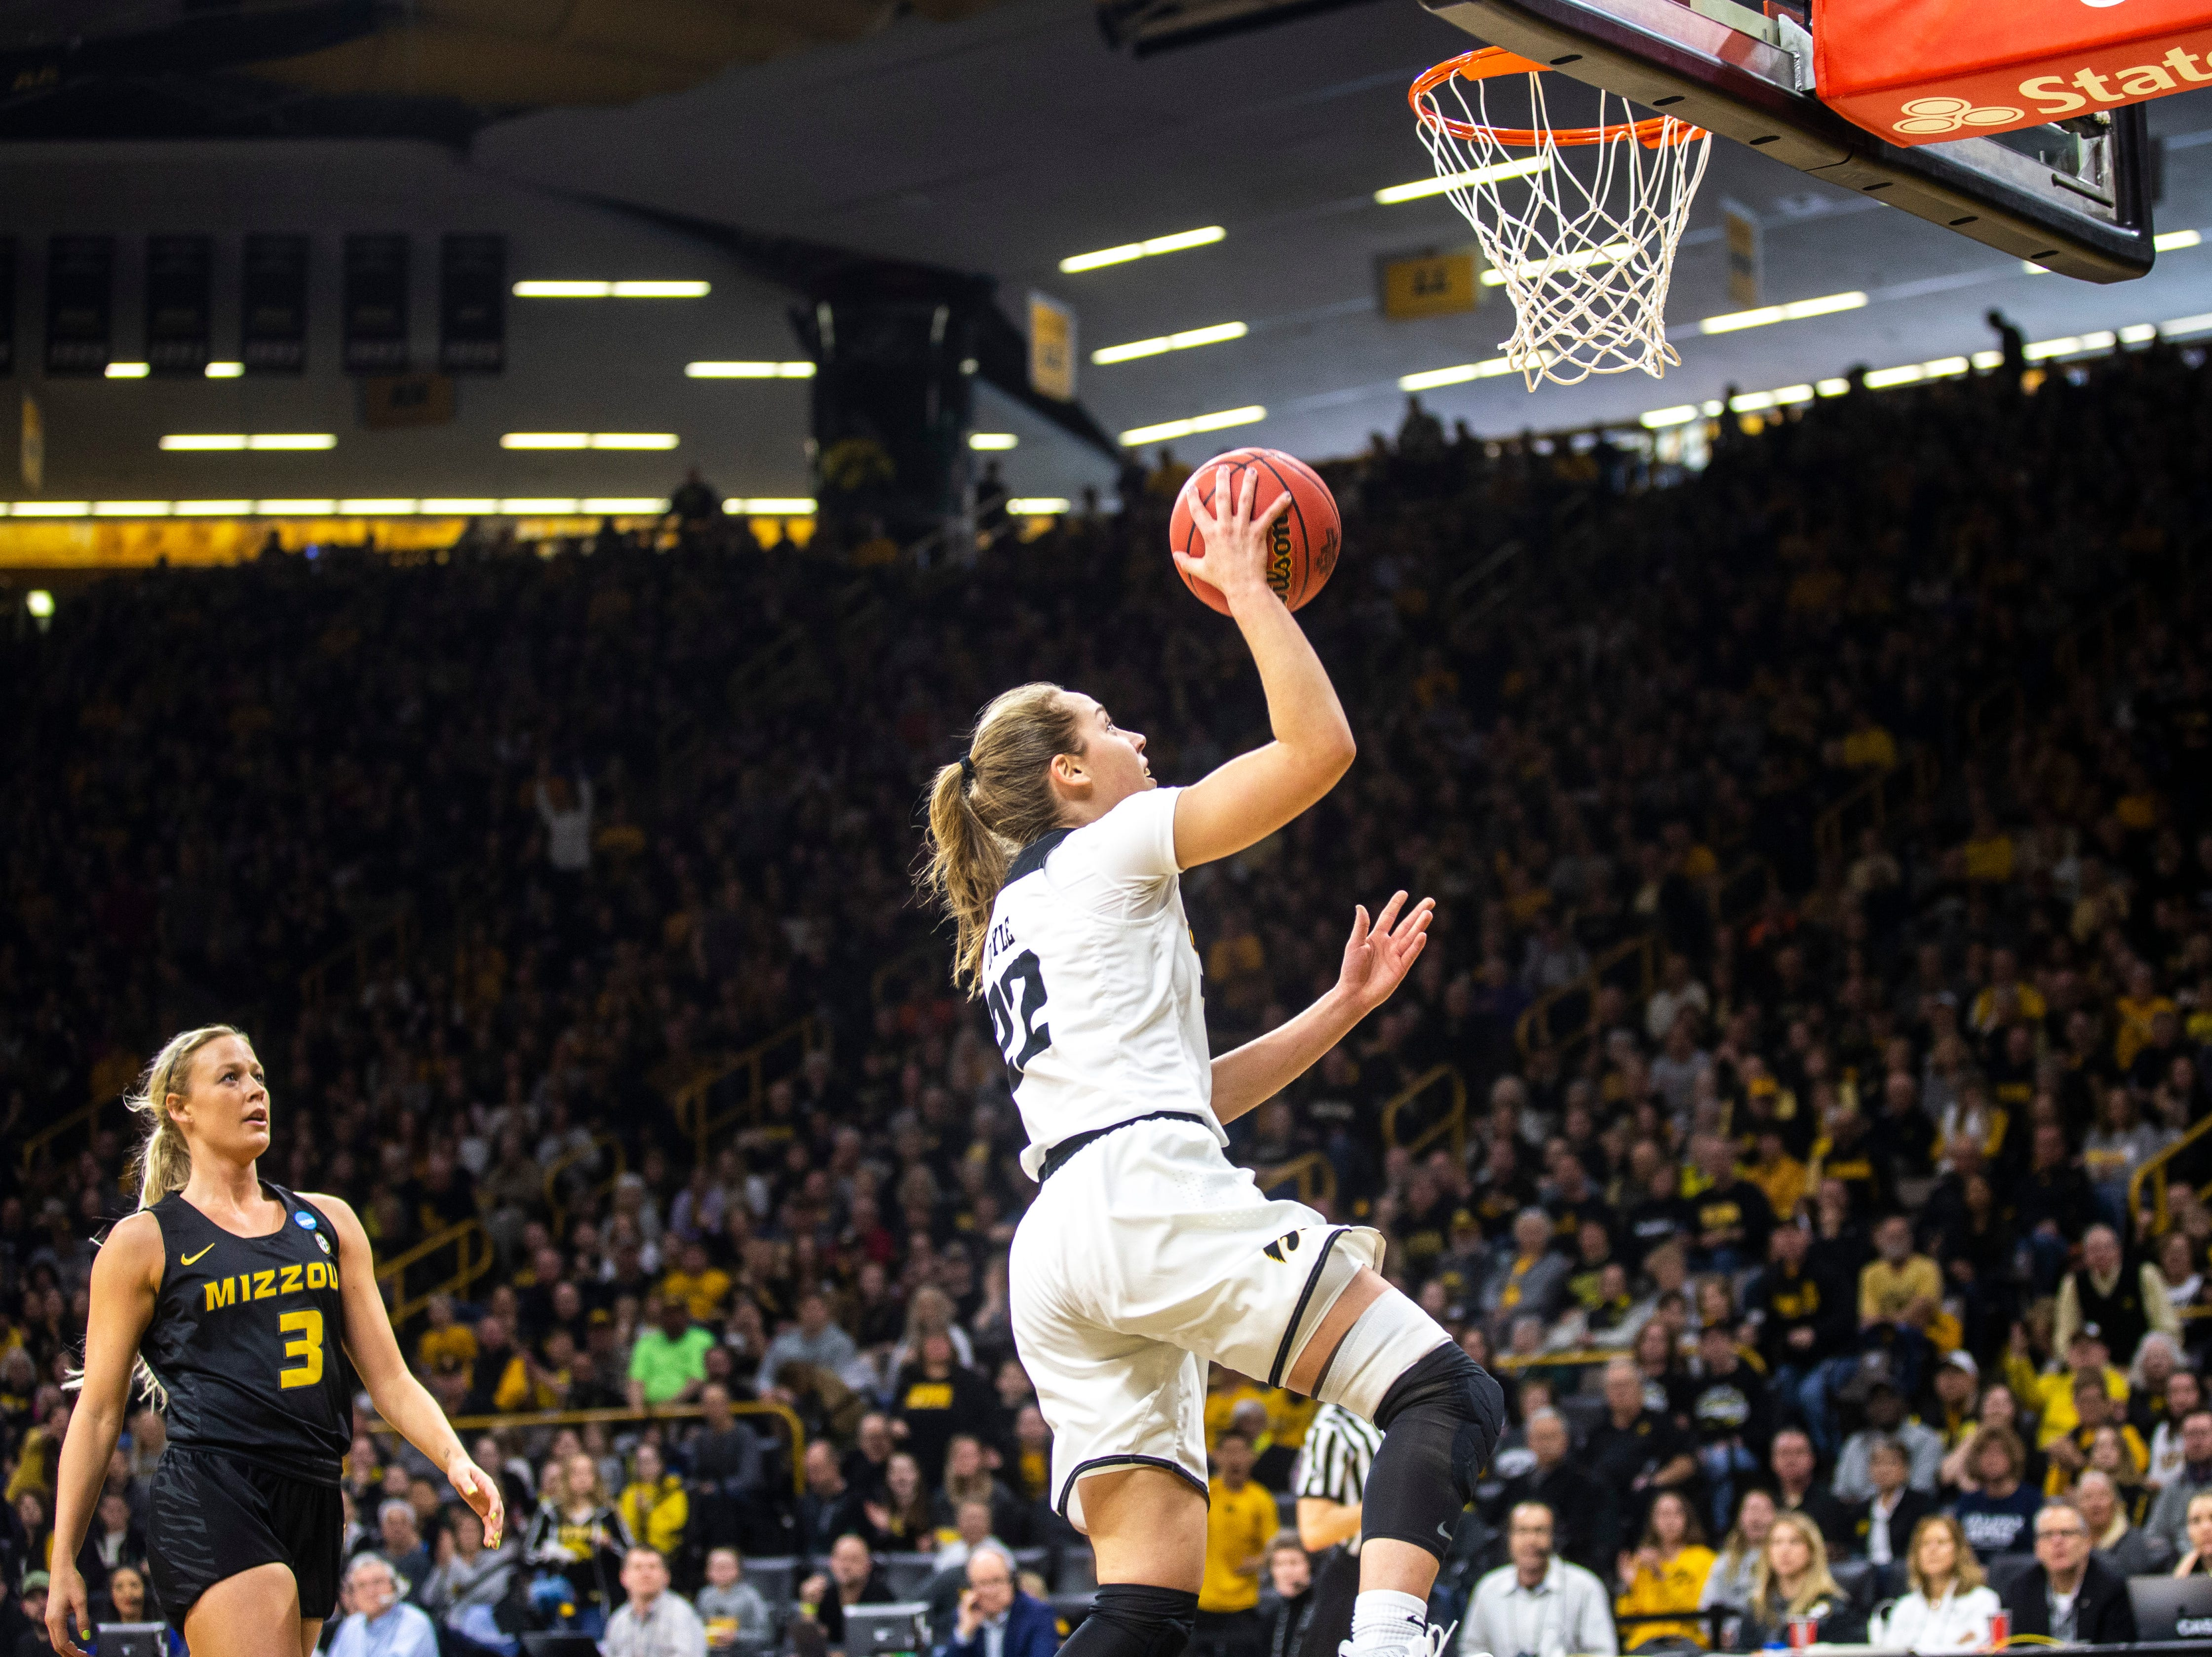 Iowa guard Kathleen Doyle (22) makes a basket while Missouri guard Sophie Cunningham (3) defends during a NCAA women's basketball tournament second-round game, Sunday, March 24, 2019, at Carver-Hawkeye Arena in Iowa City, Iowa.